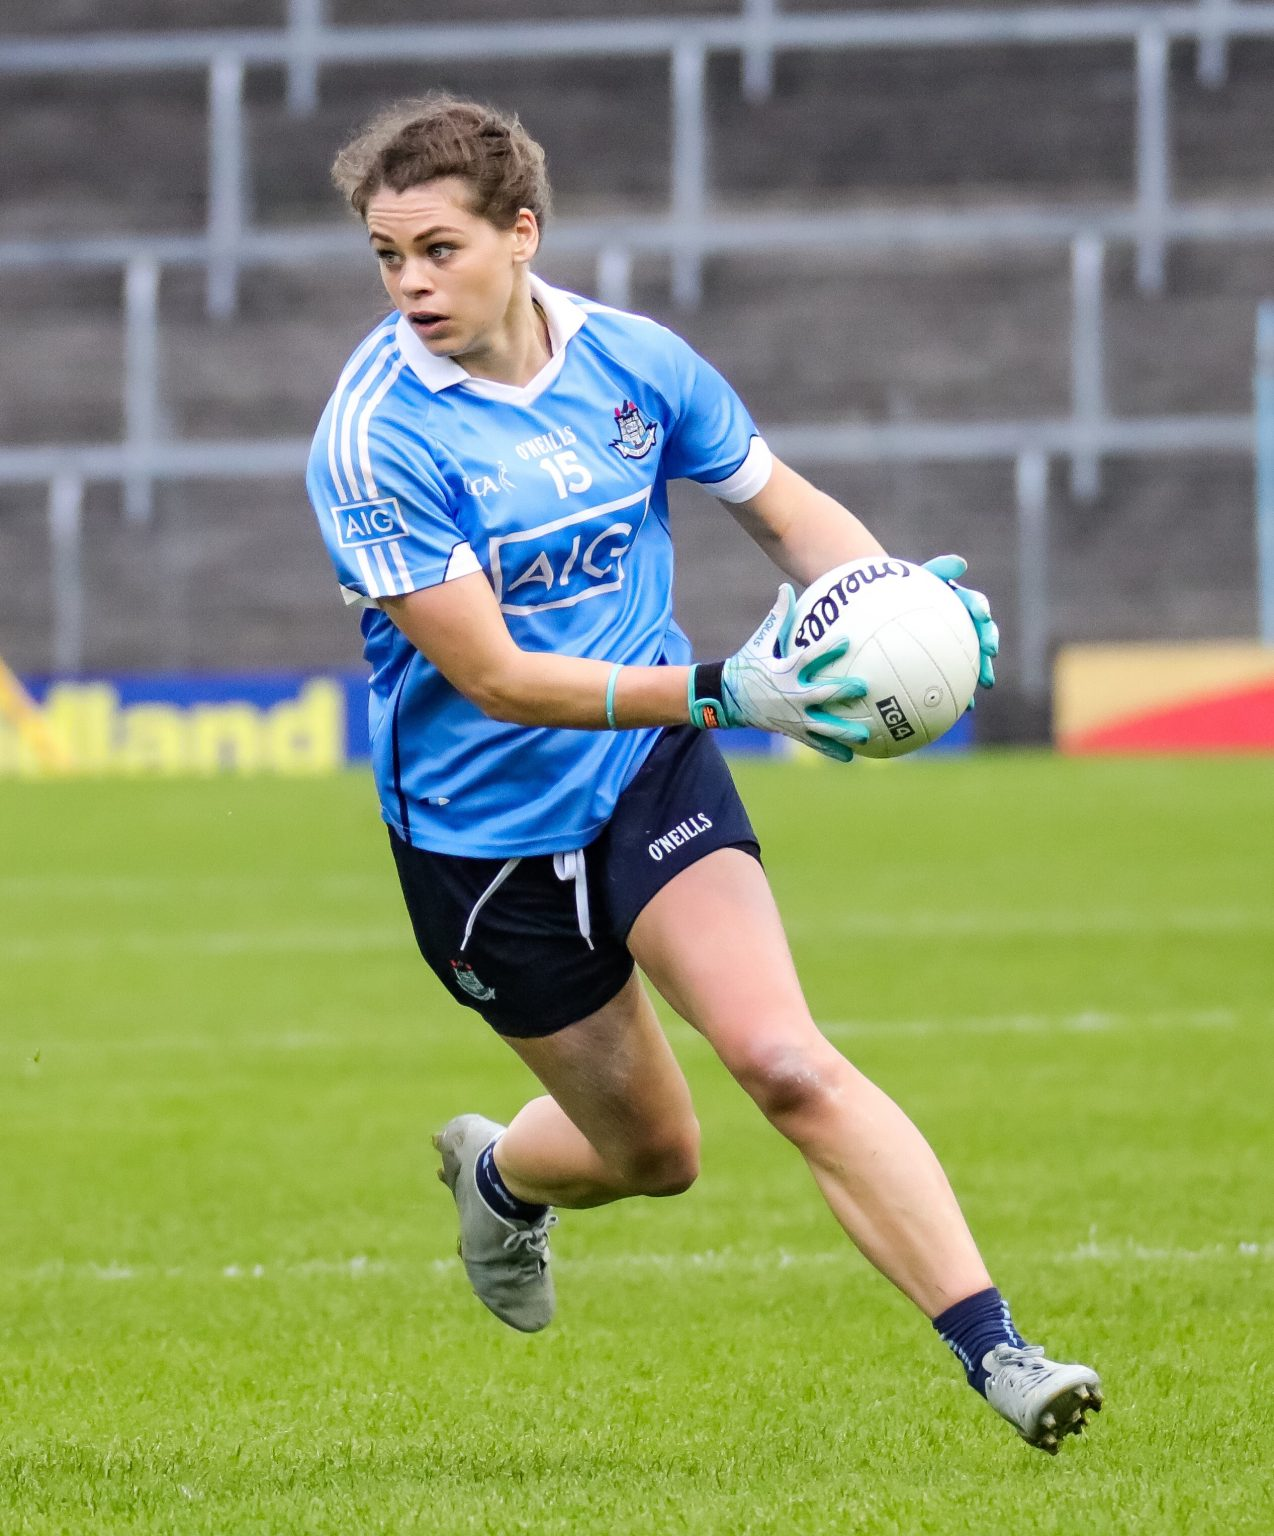 Image Of Dublin's Noelle Healy In Action Against Kerry In a The TG4 All Ireland Semi Final